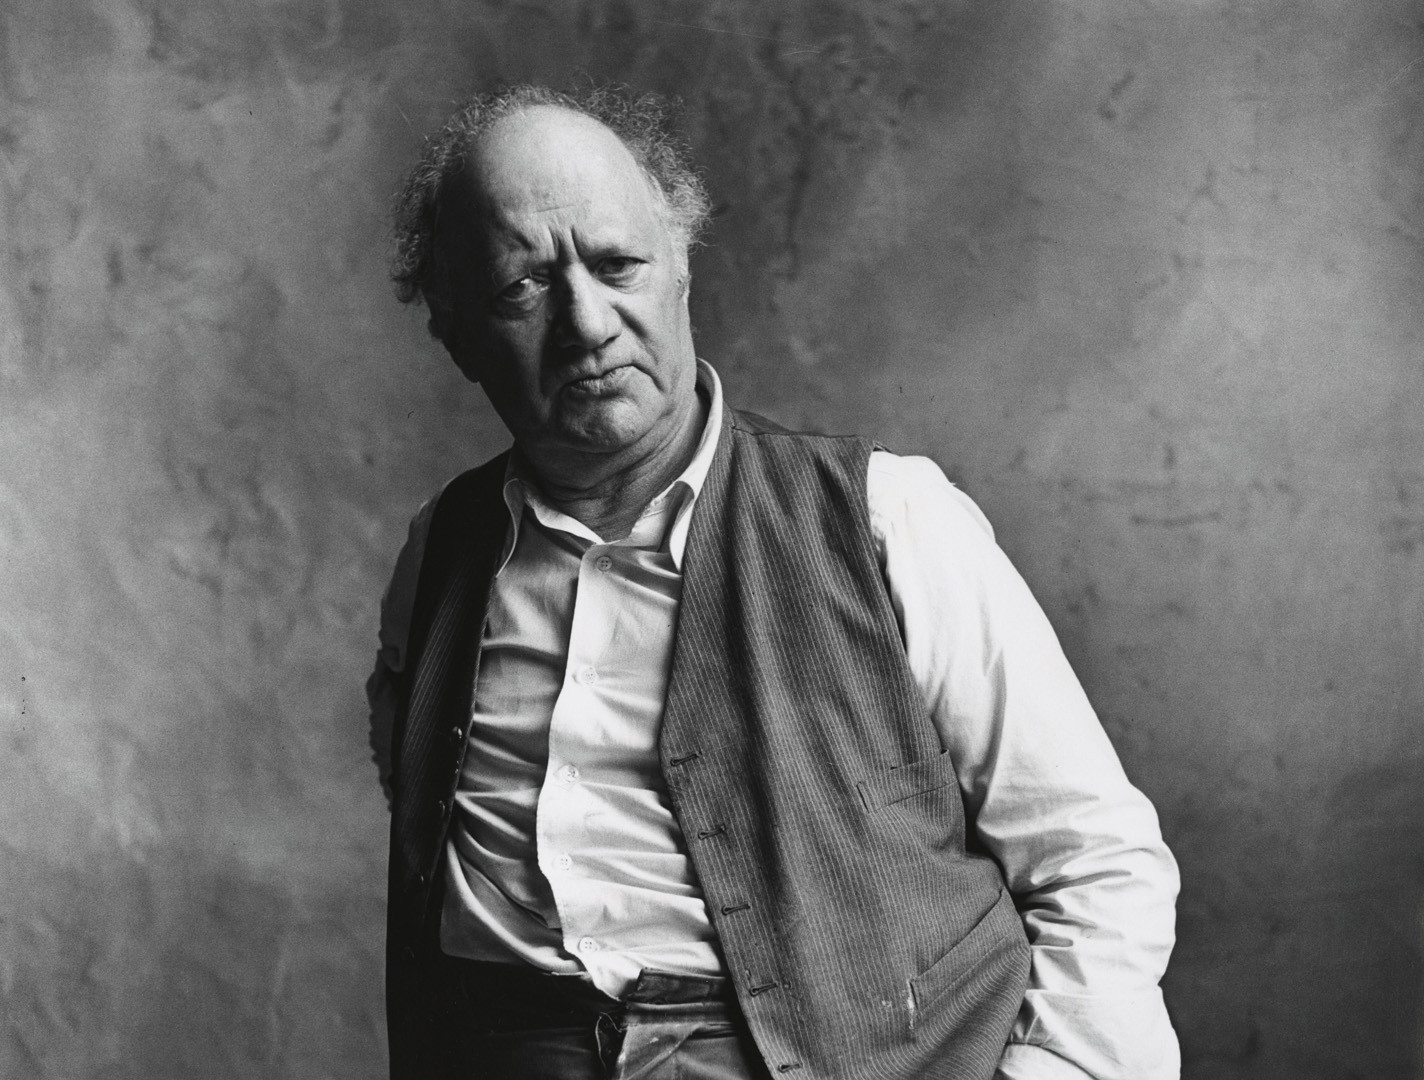 Irving Penn, Sir Jacob Epstein, London, 1950